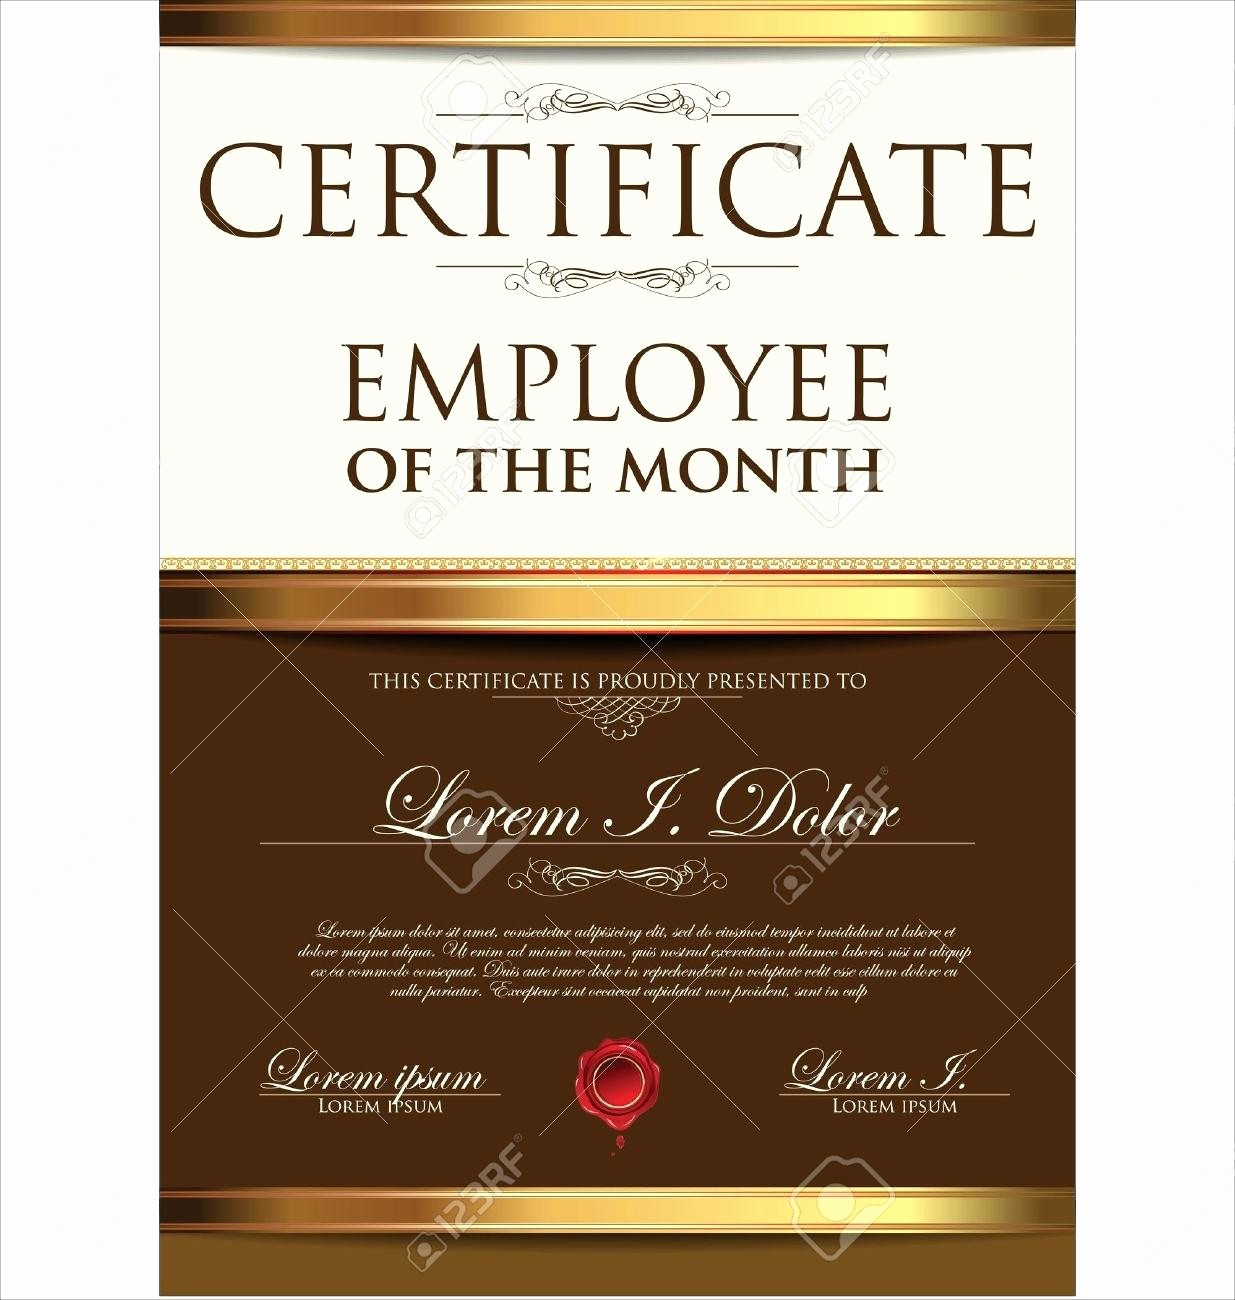 Make Your Own Certificate Templates Unique Certificate Templates 8 Best Of Create Your Own